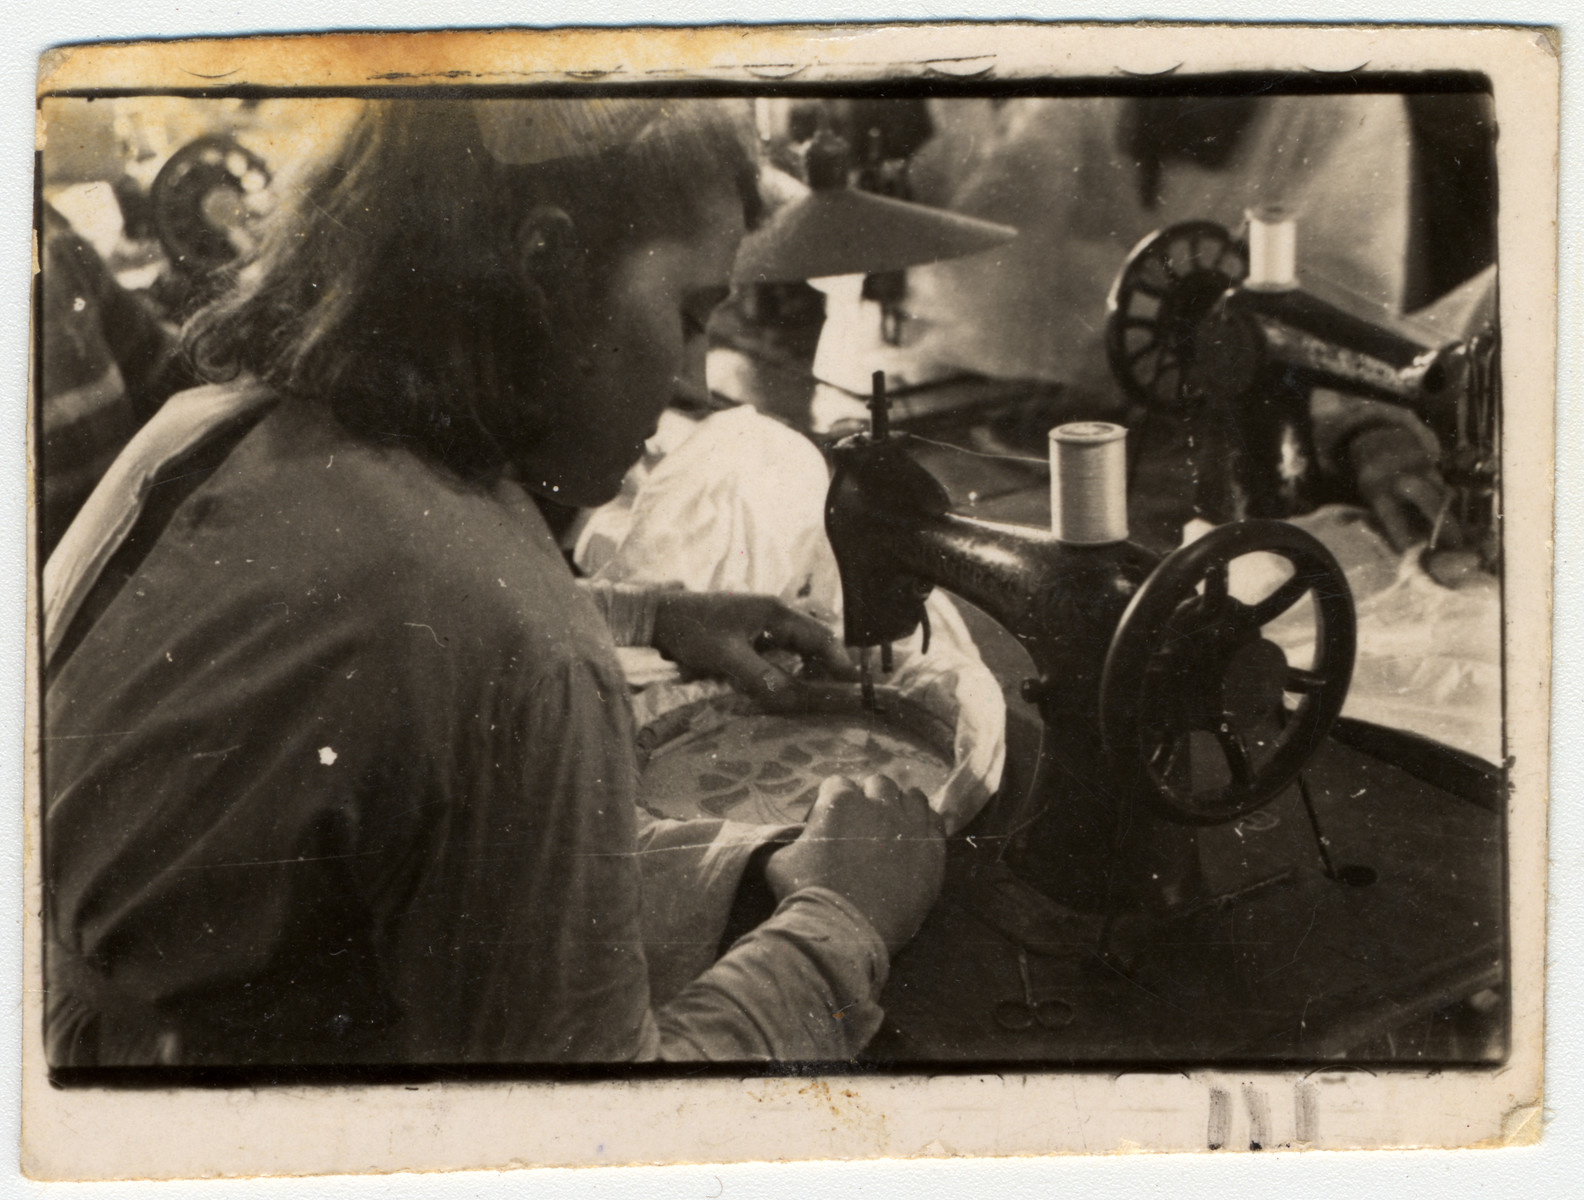 A Jewish woman does embroidery next to a sewing machine in a workshop in the Lodz ghetto.